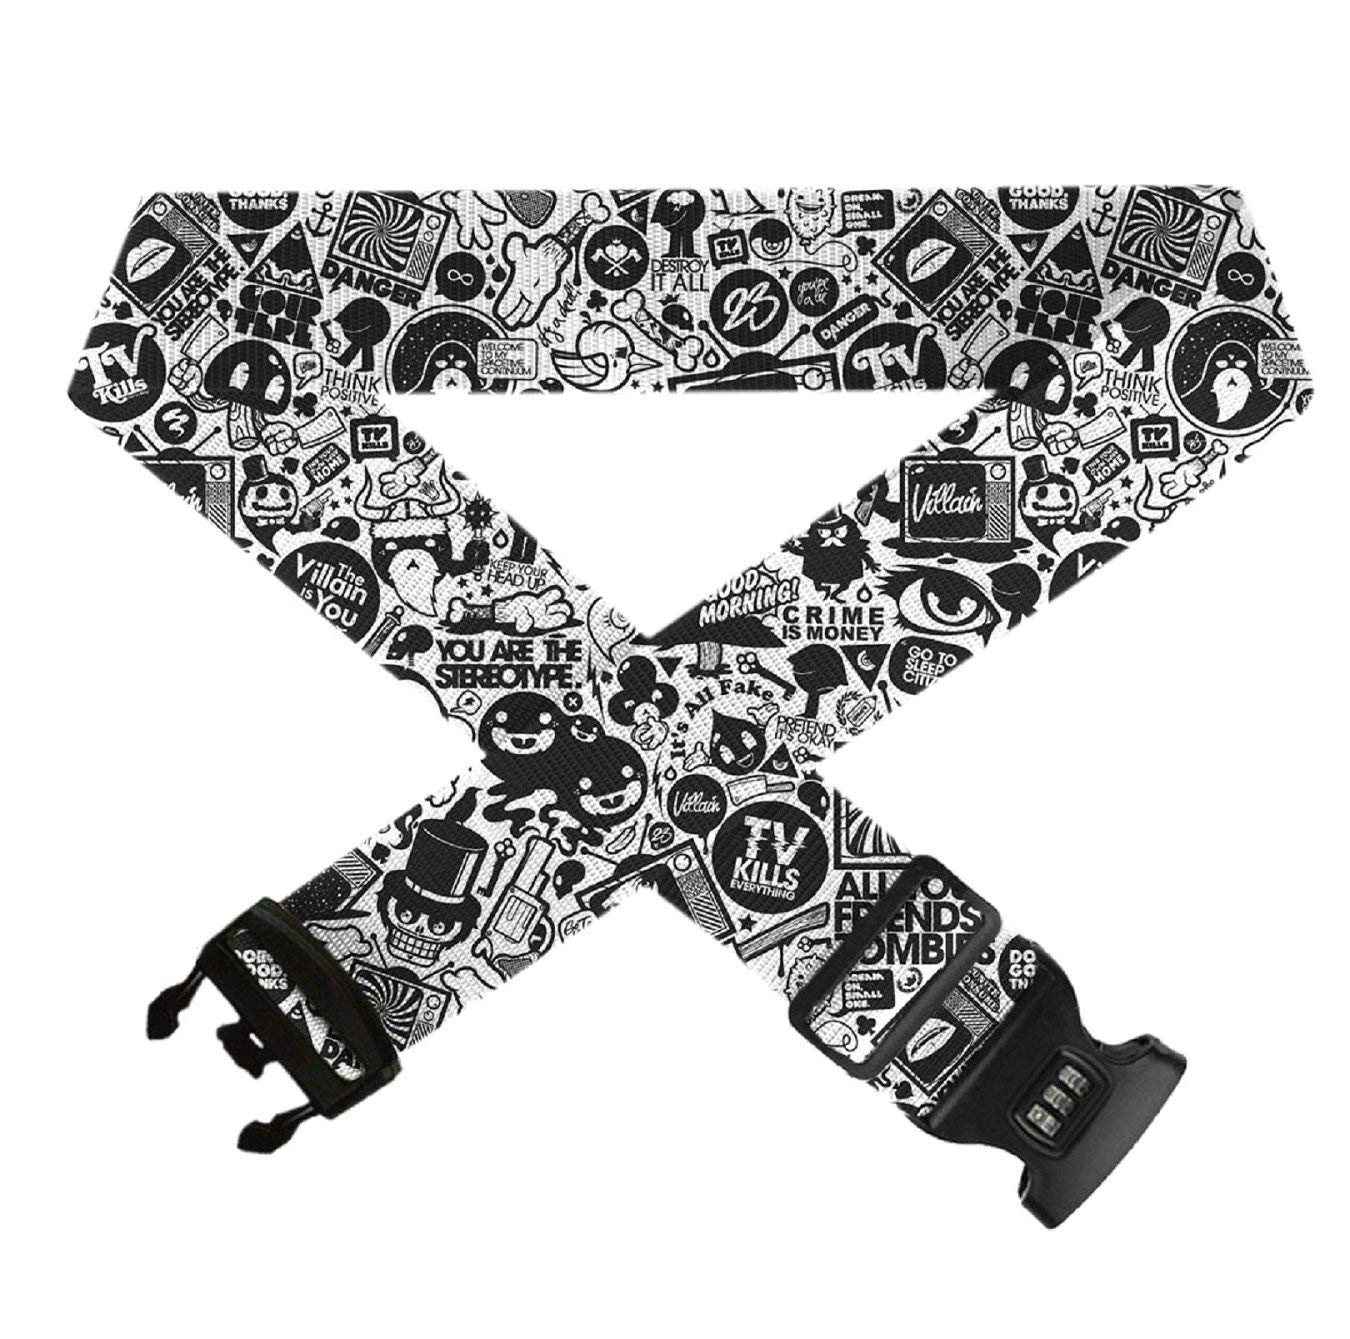 Retro Black Trippy Art 1 PC Durable Suitcase Straps TSA Approved Lock for Travel Bag Accessories Adjustable Travel Luggage Belts